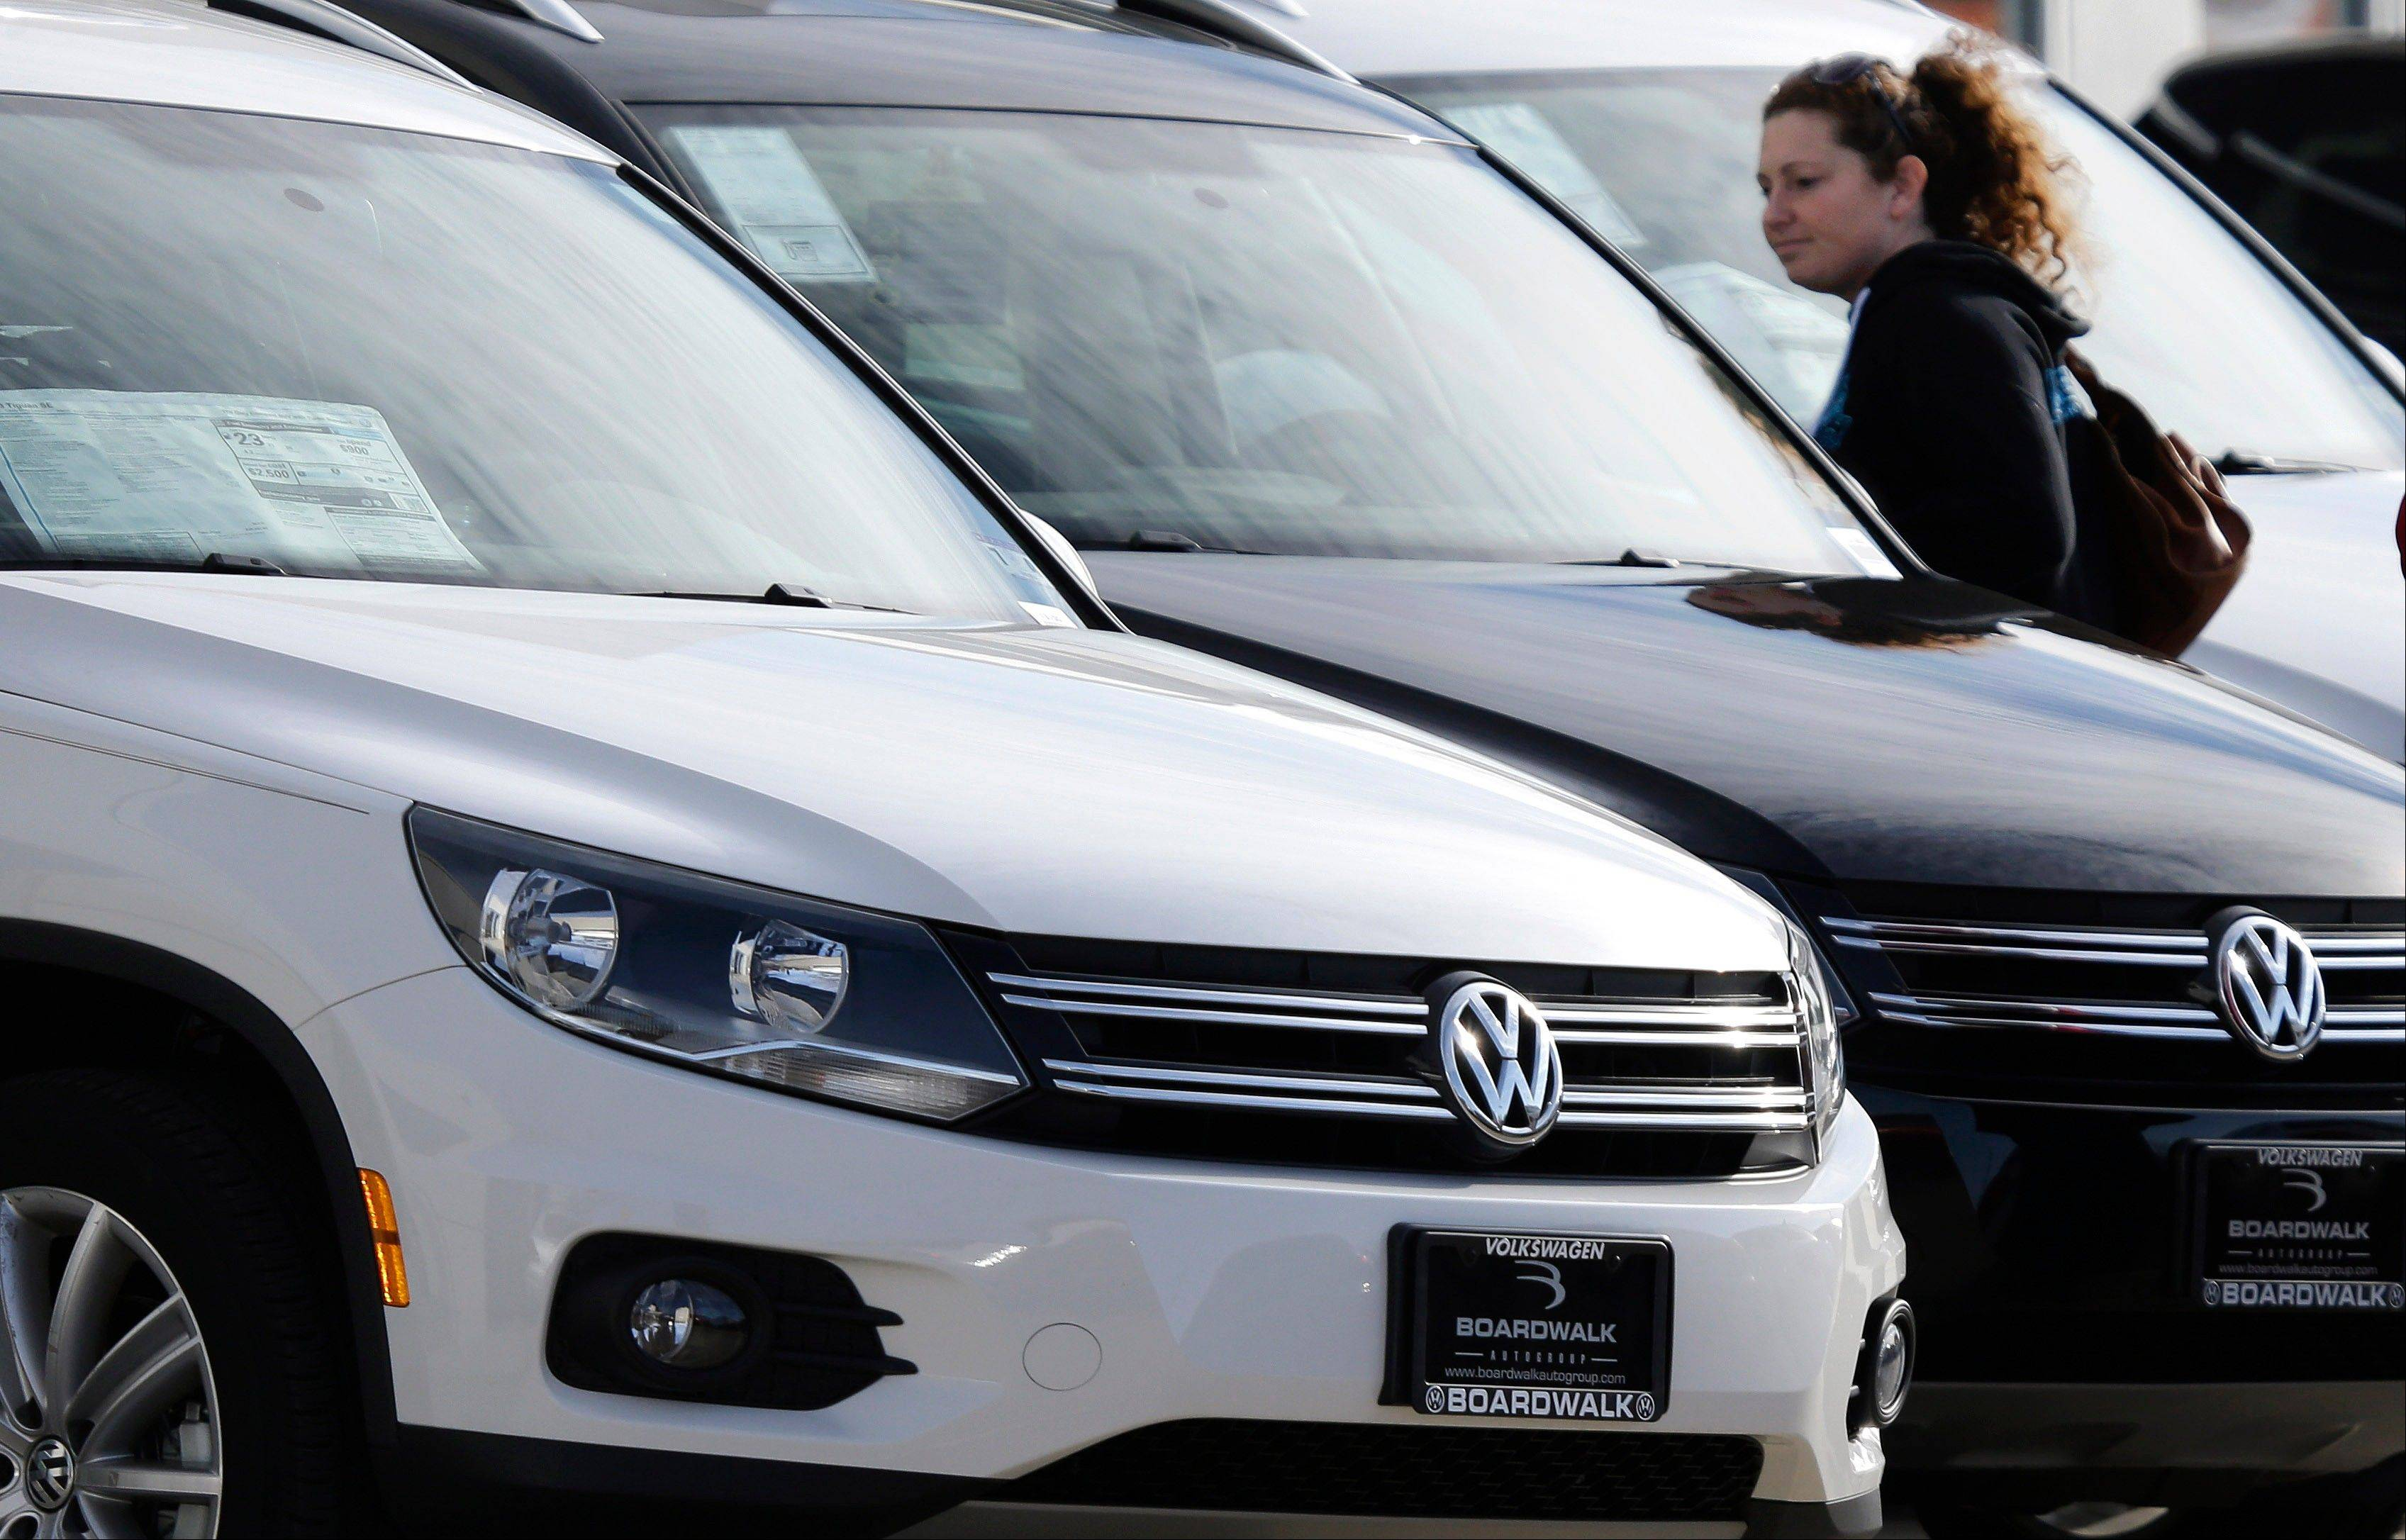 Industry analysts expect February's sales to be up about 7 percent from a year earlier as pent-up demand and cheap financing kept the U.S. auto sales recovery powering along. Volkswagen reported its best February since 1973.